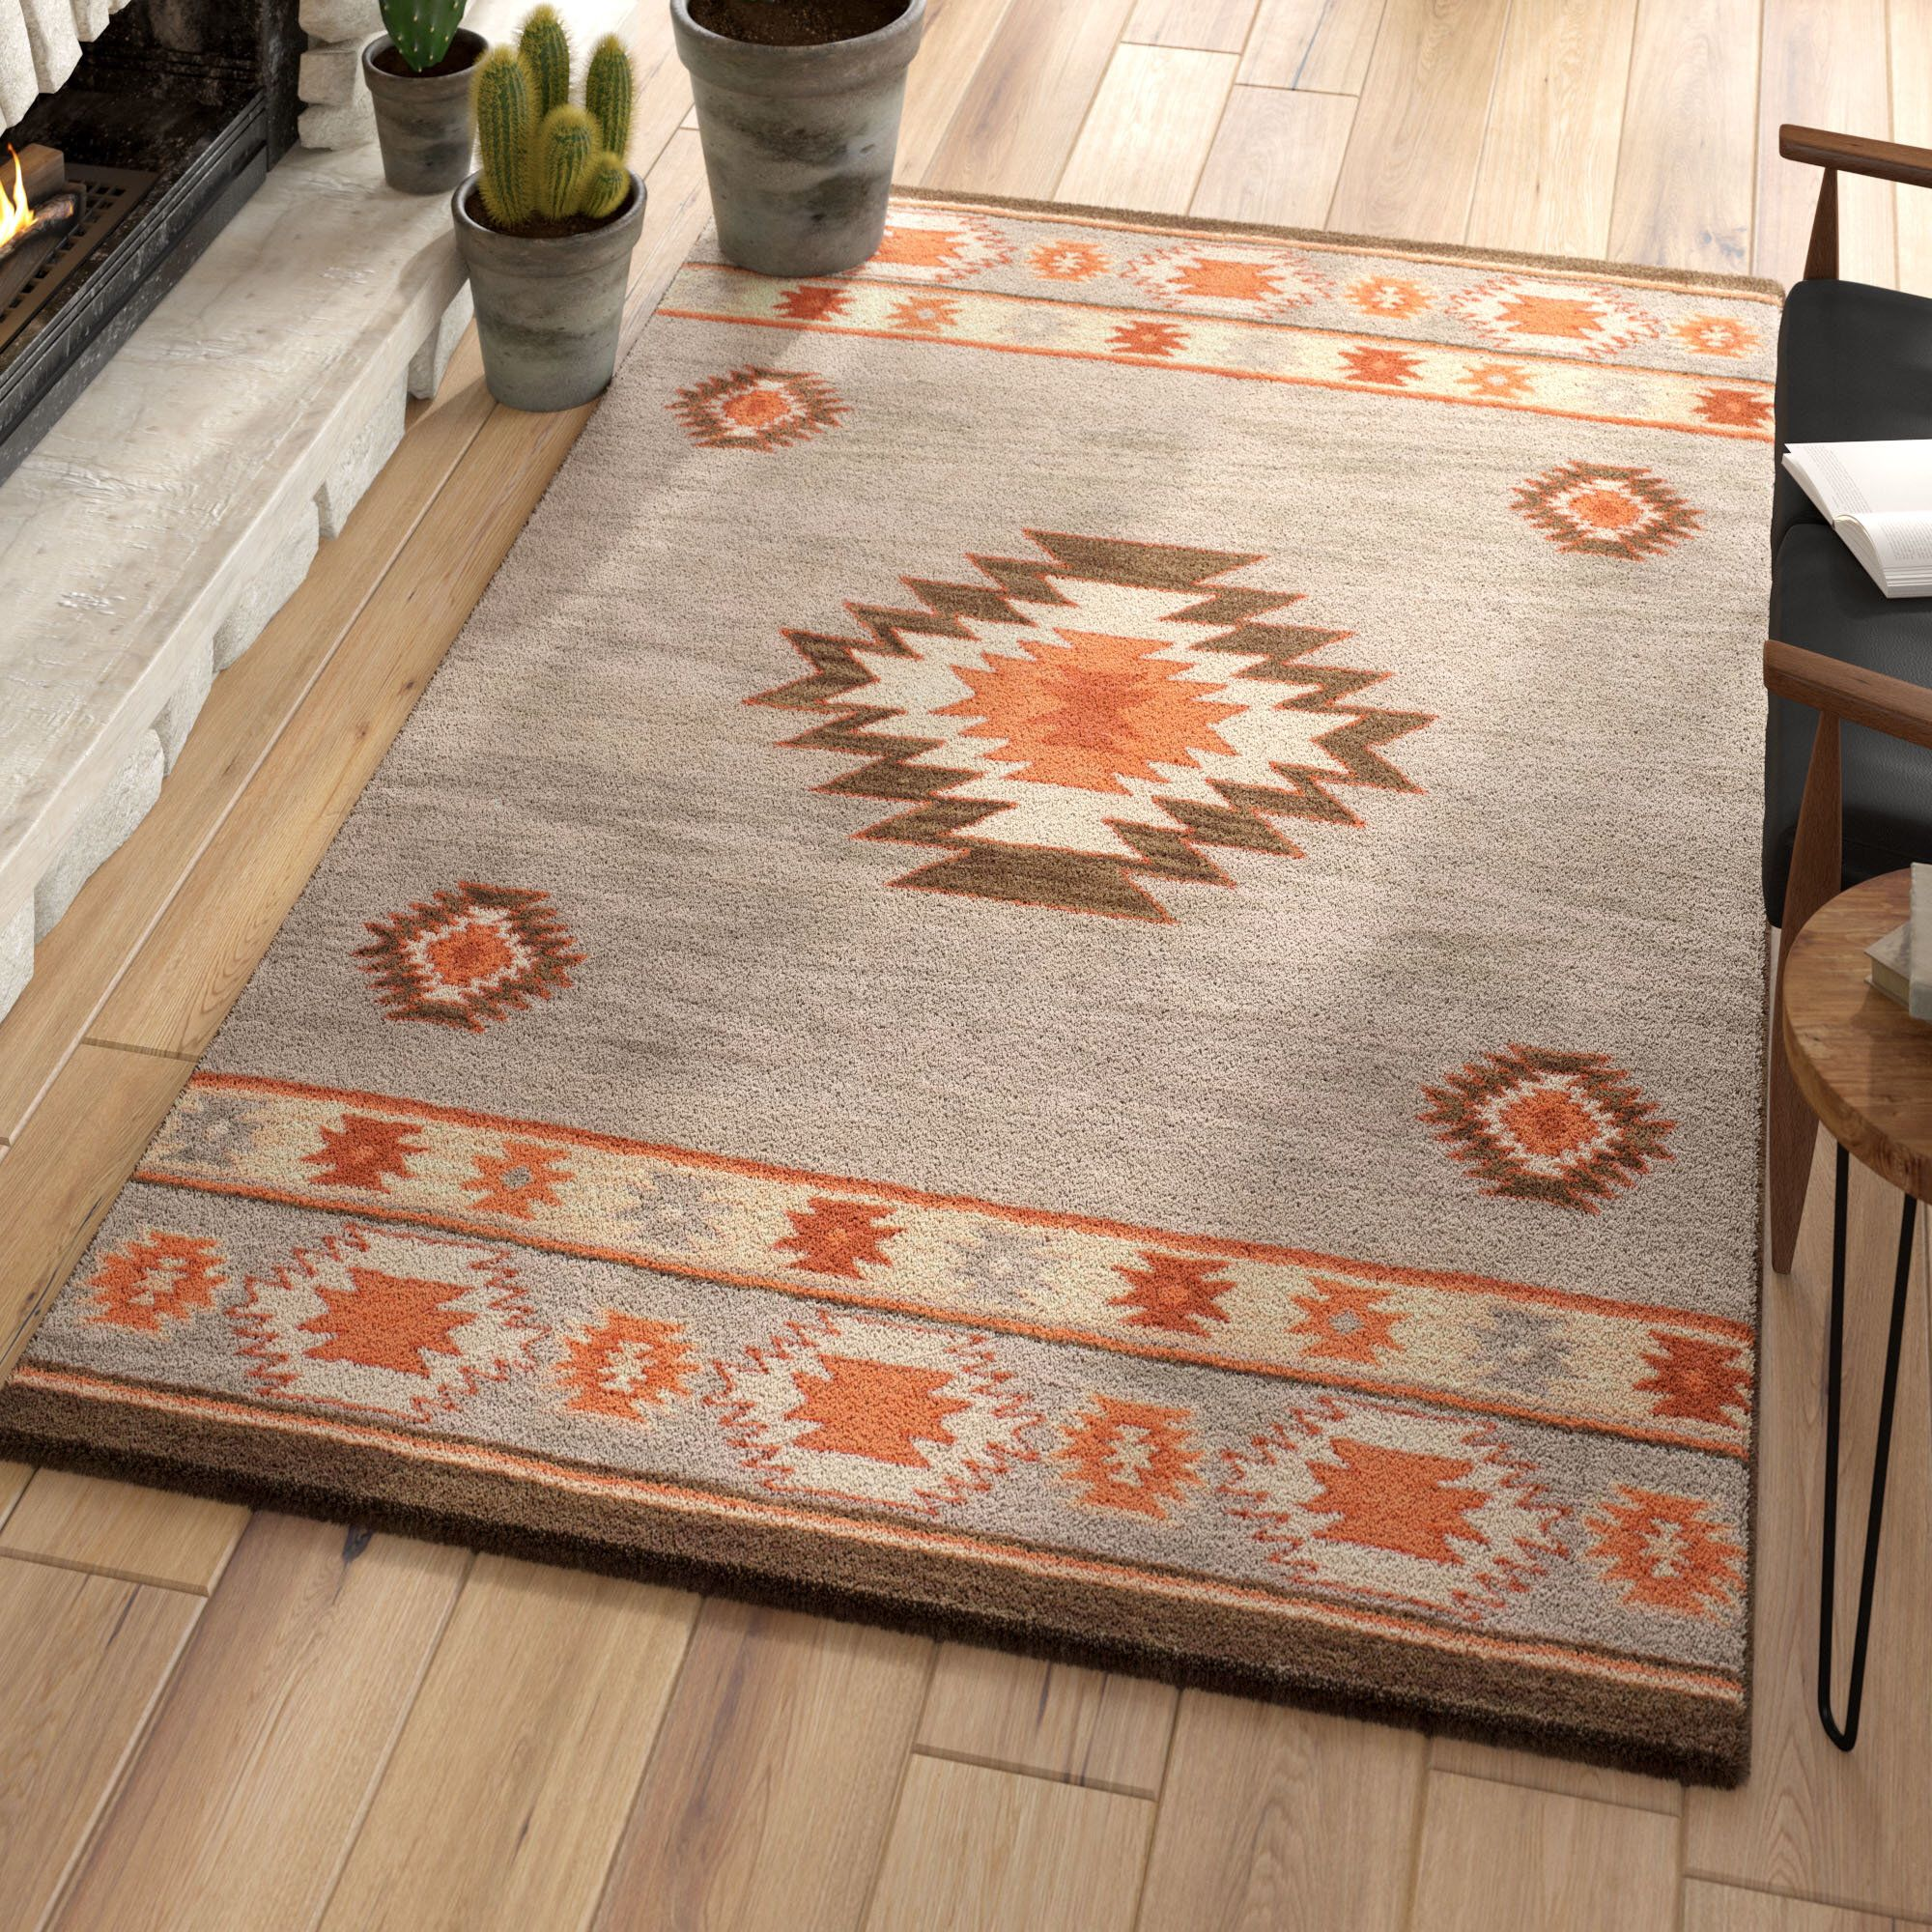 Claghorn Hand Tufted Gray Area Rug Area Rugs Rugs Beige Area Rugs